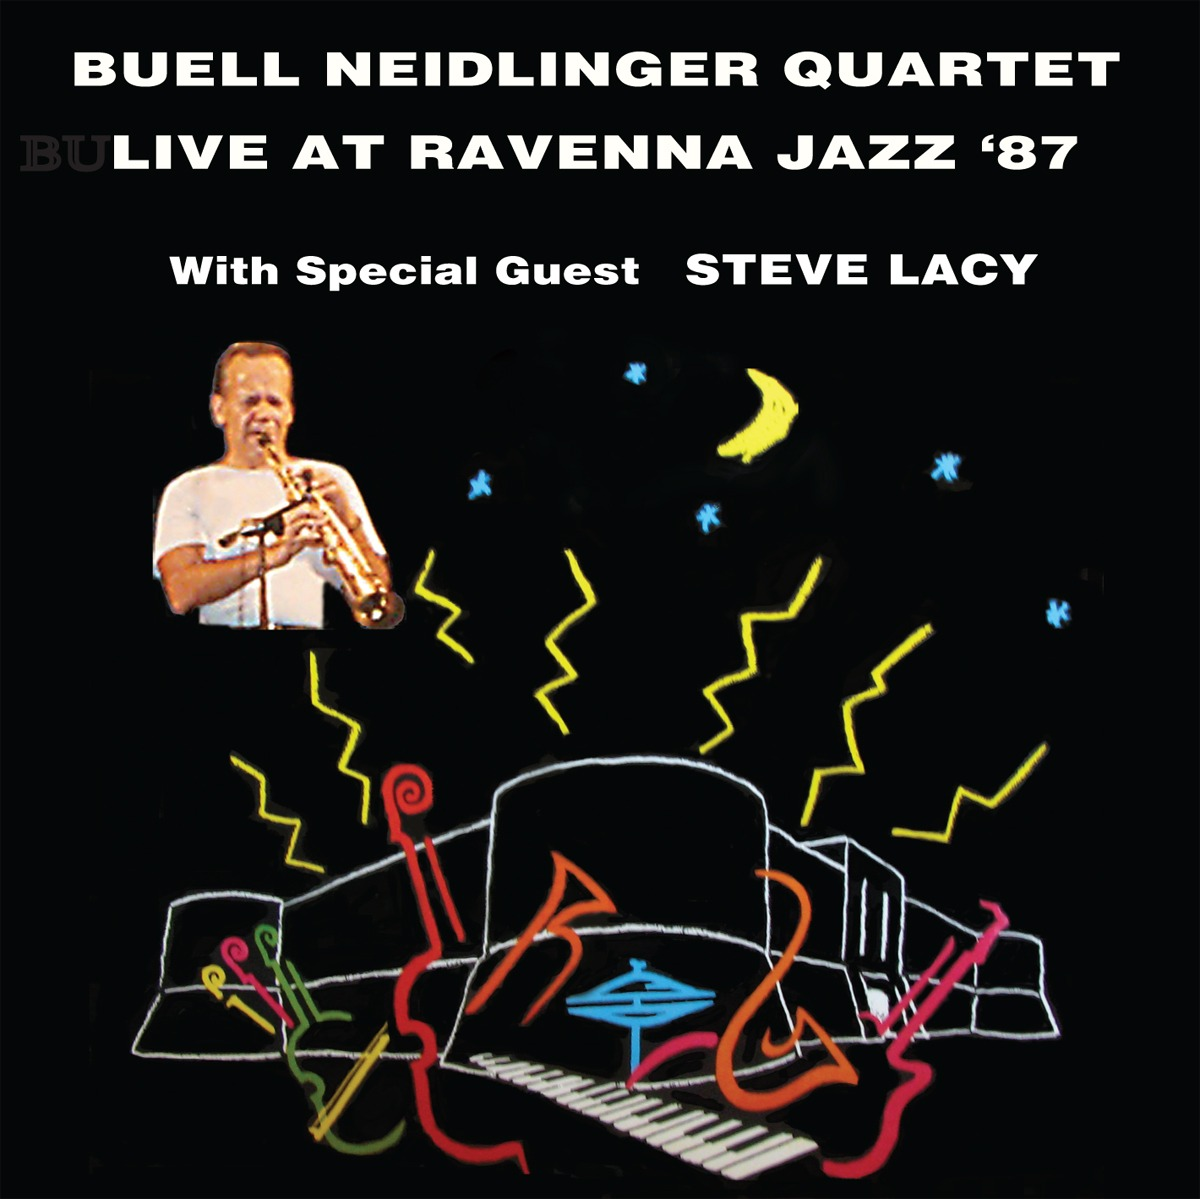 Buell Neidlinger Quartet - Live at Ravenna Jazz '87 plus Steve Lacy (K2B2 3969) .MP3